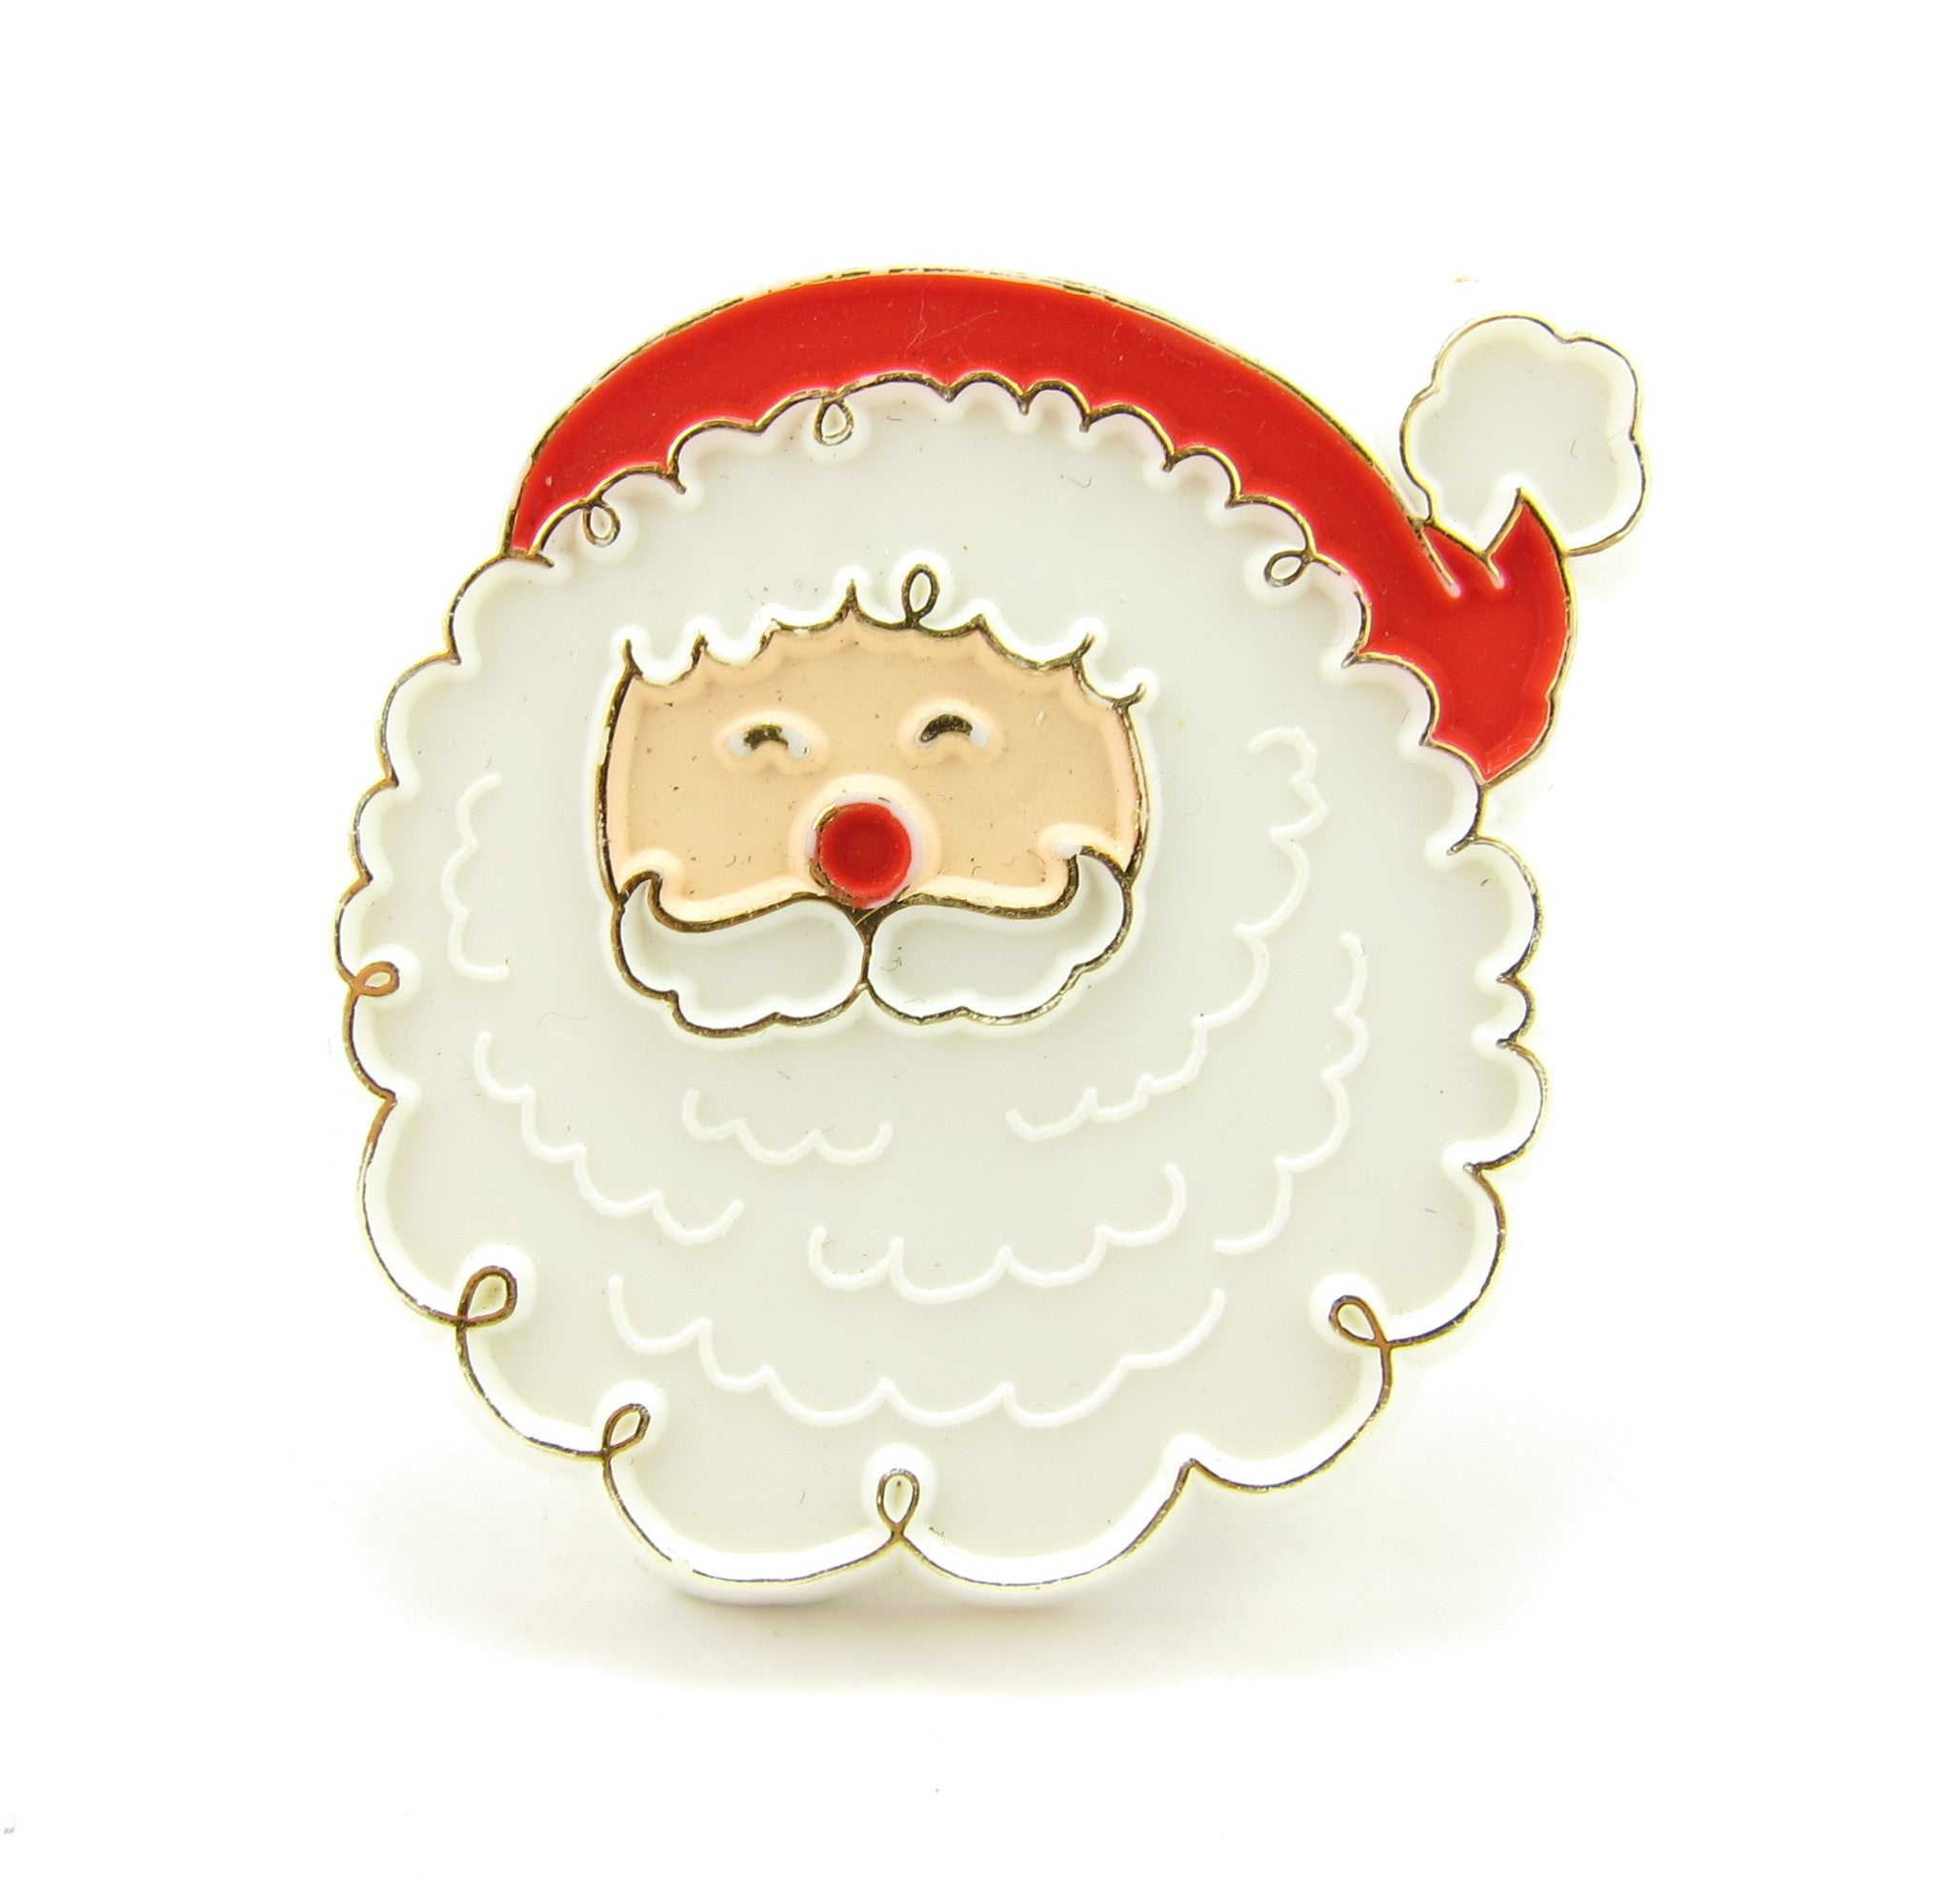 Hallmark Santa Claus face pin